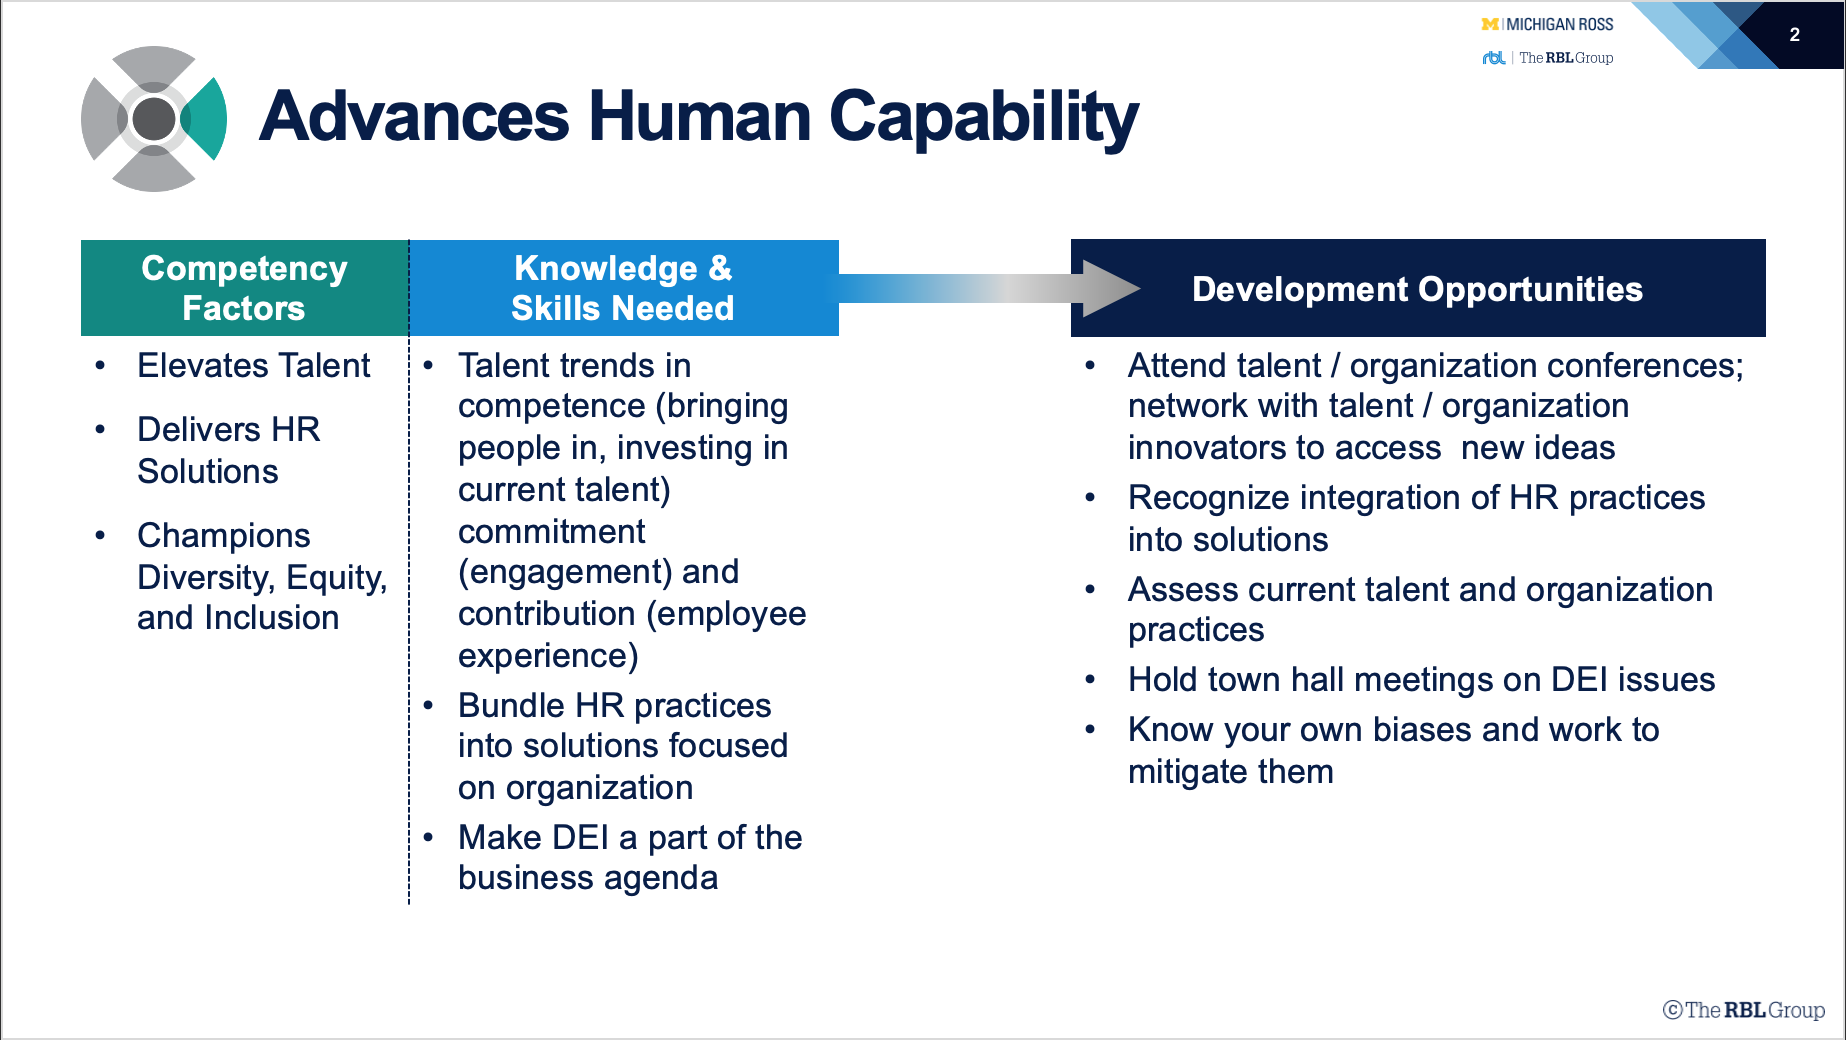 HR Competency Study Advances Human Capability Table